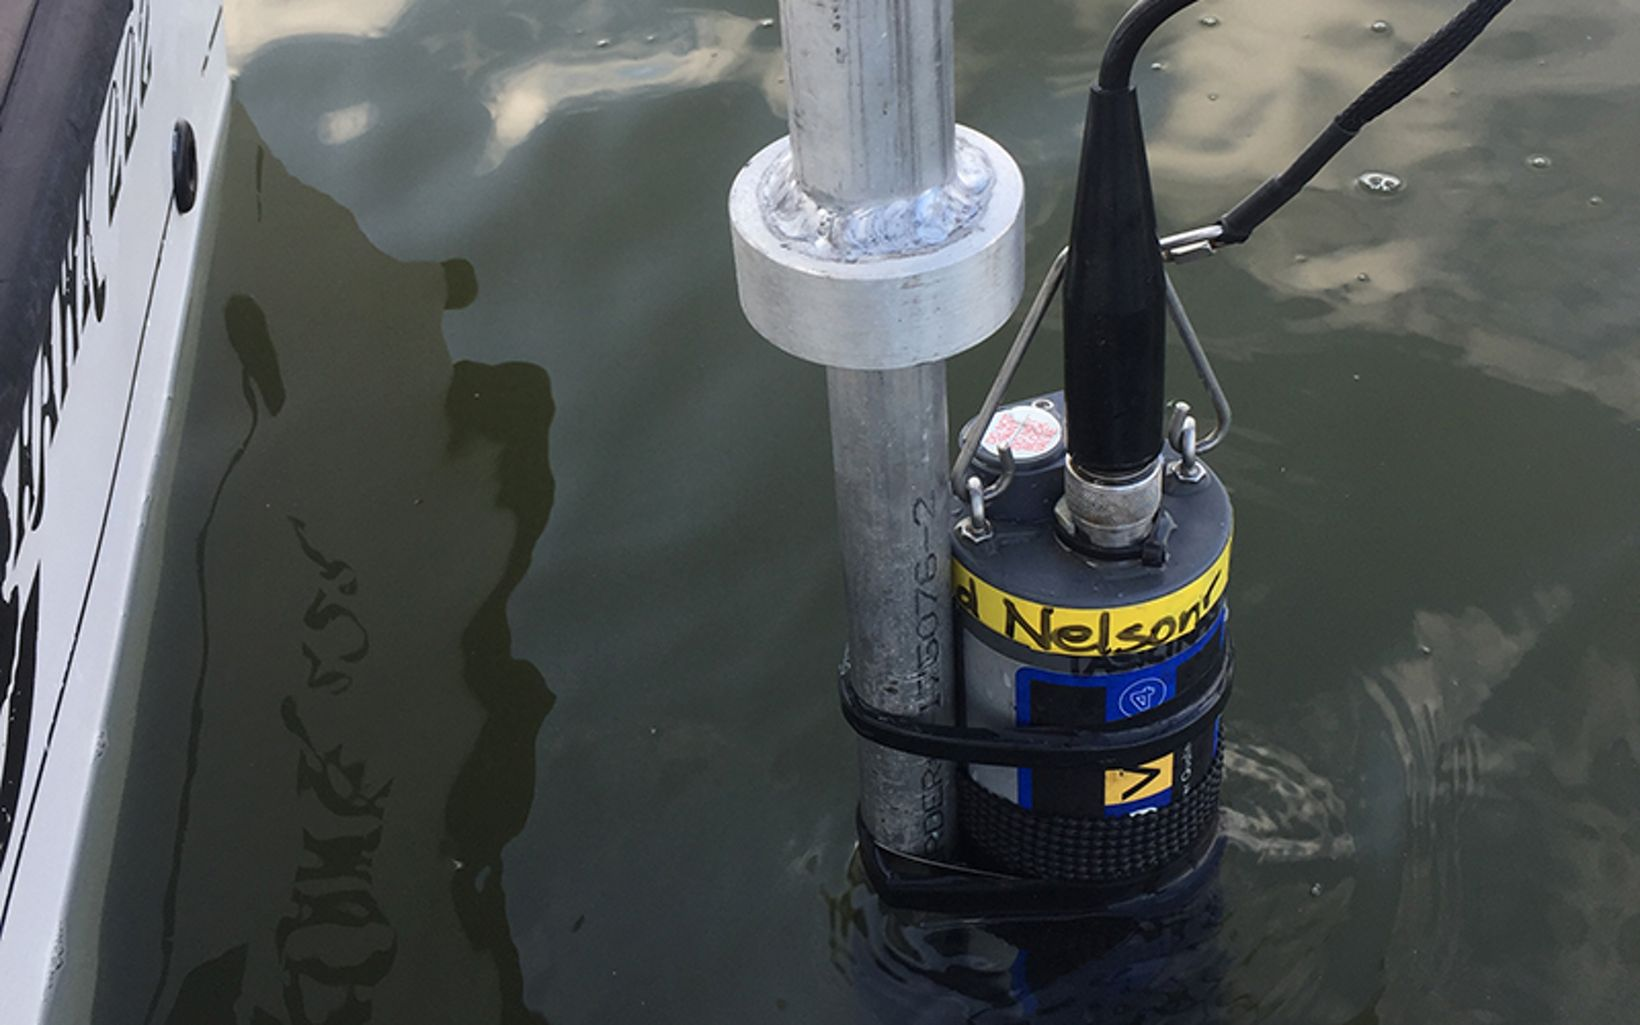 A water quality sensor samples the water every 10 seconds measuring dissolved oxygen, water temperature, salinity, and chlorophyll.